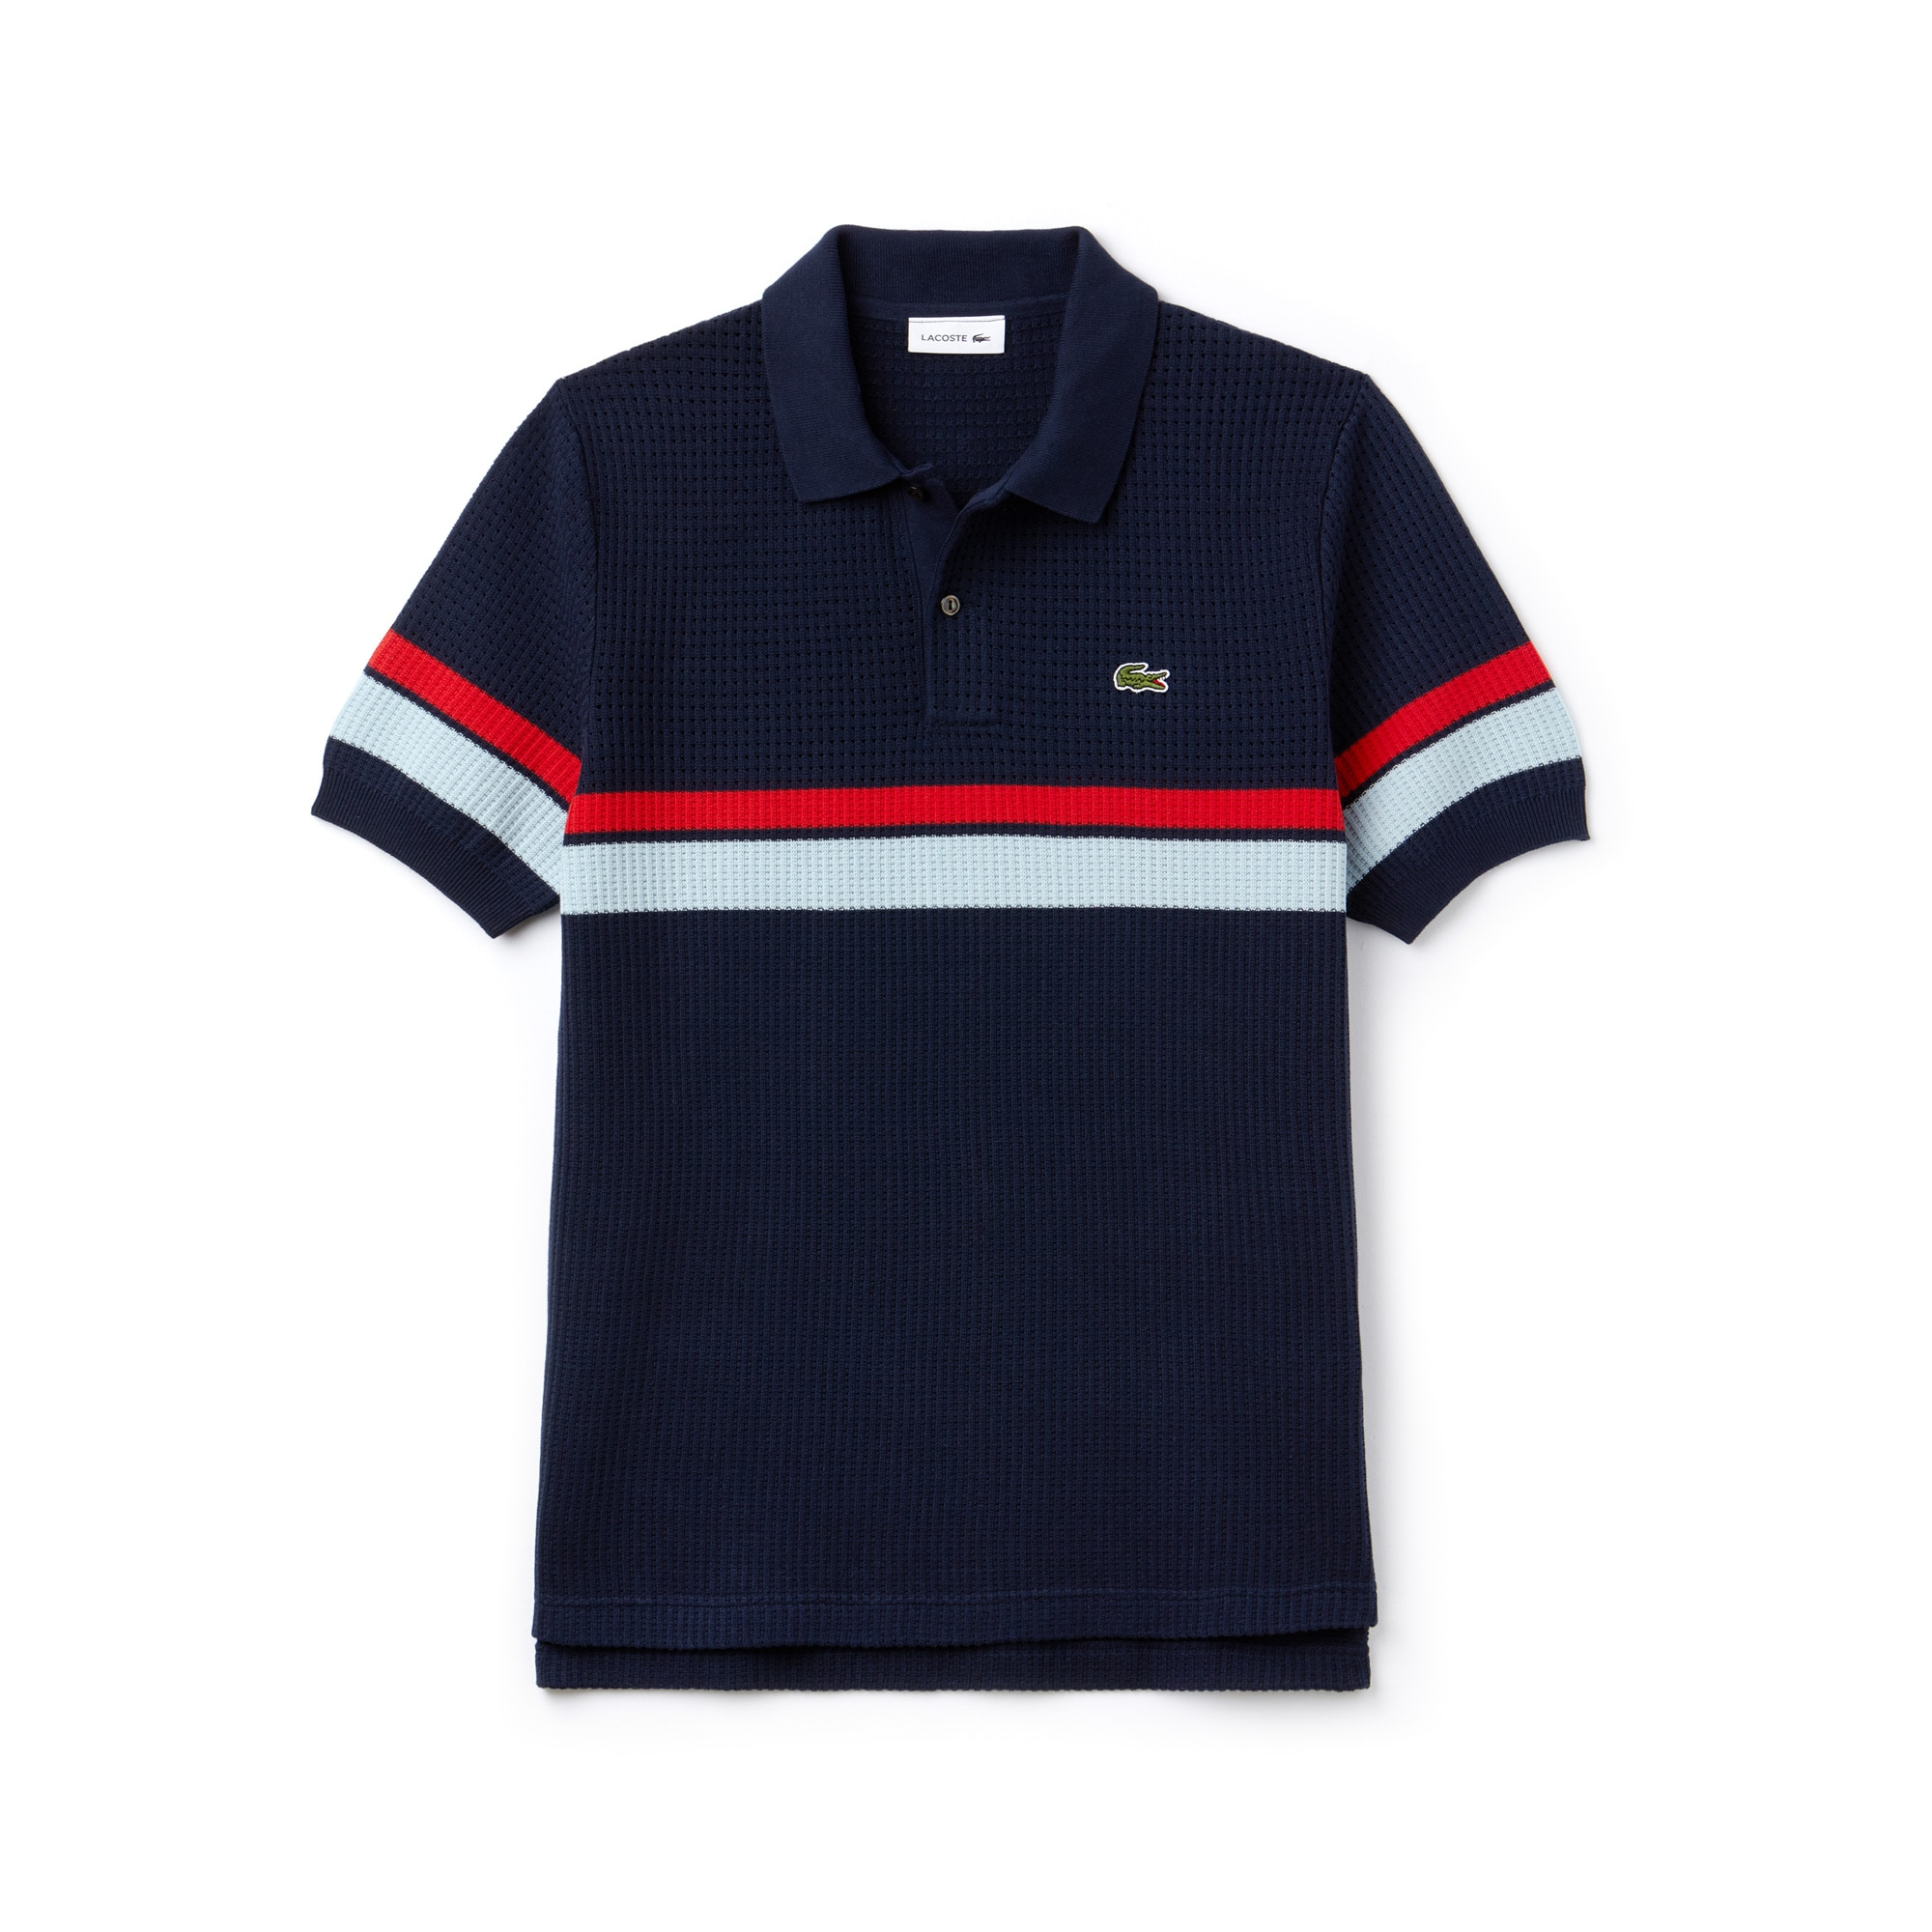 Men's Lacoste Fashion Show Hemstitched Colorblock Cotton Knit Polo Shirt